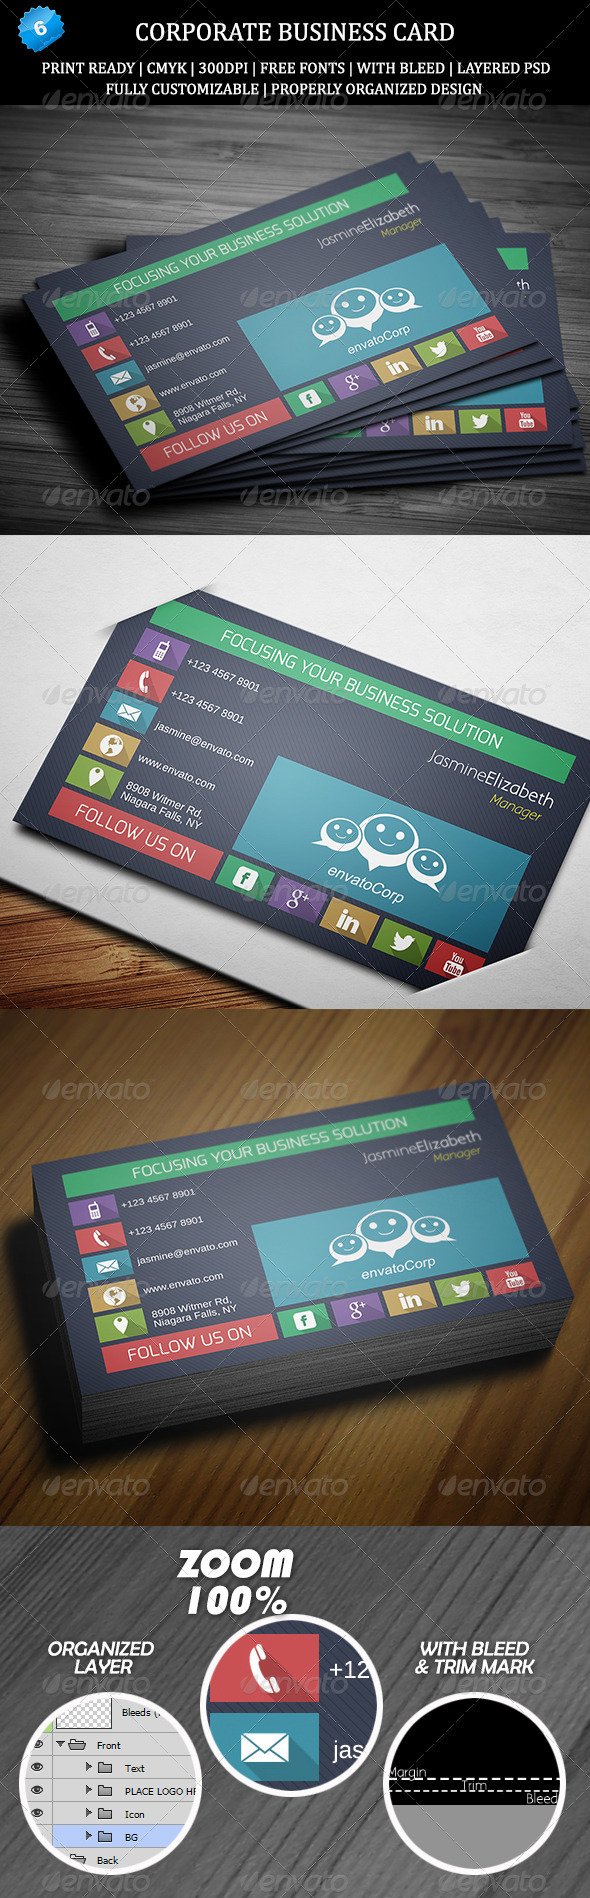 Corporate Business Card 6 - Creative Business Cards